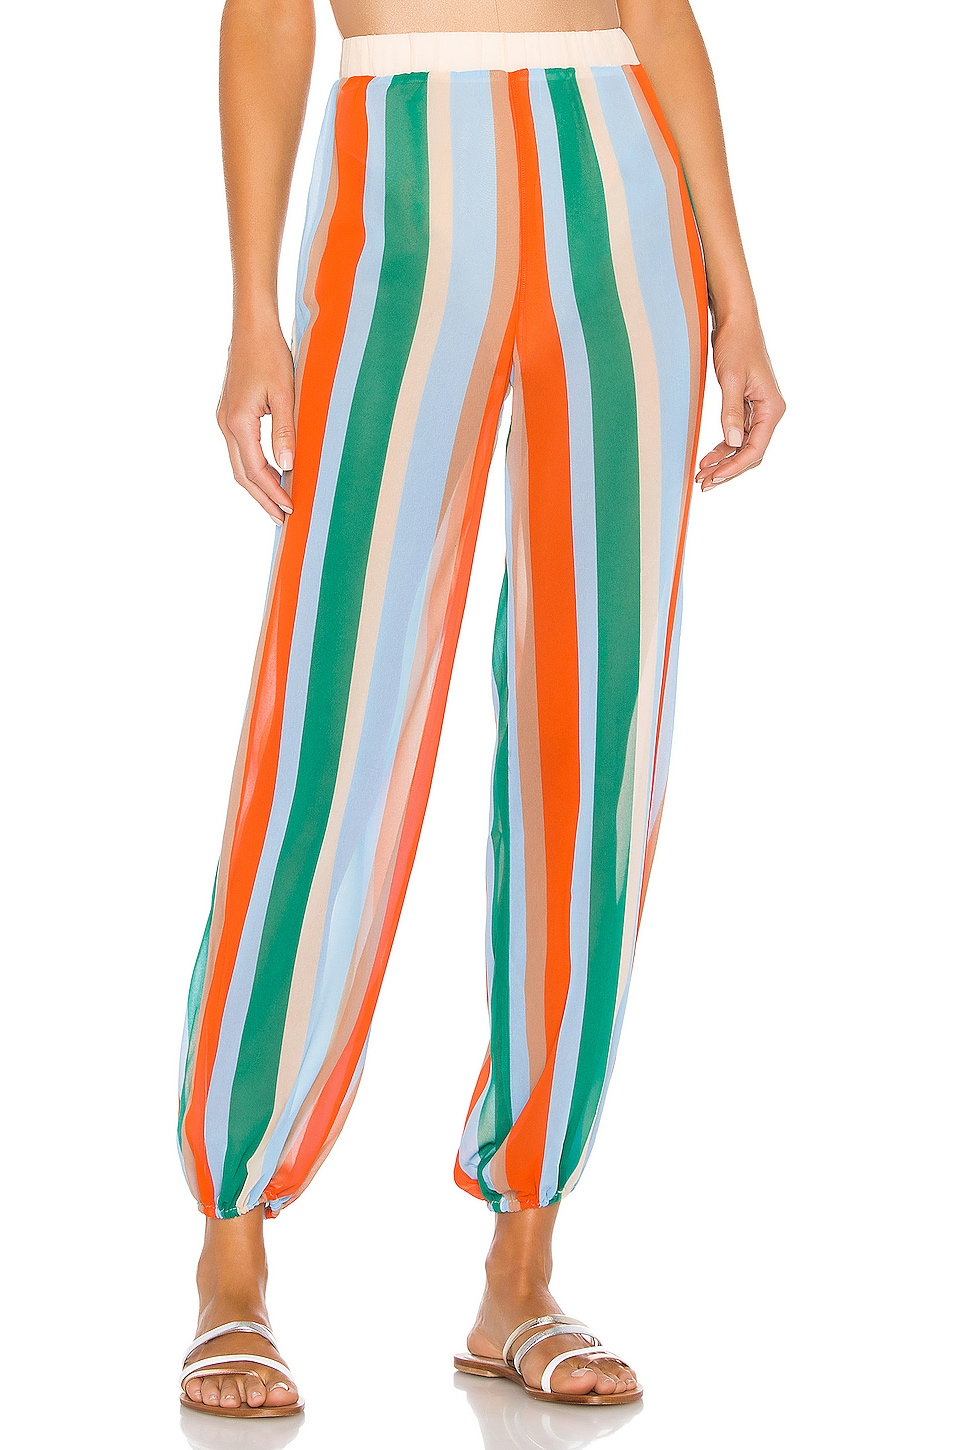 House of Harlow 1960 PANTALON DE PLAGE MANAUS